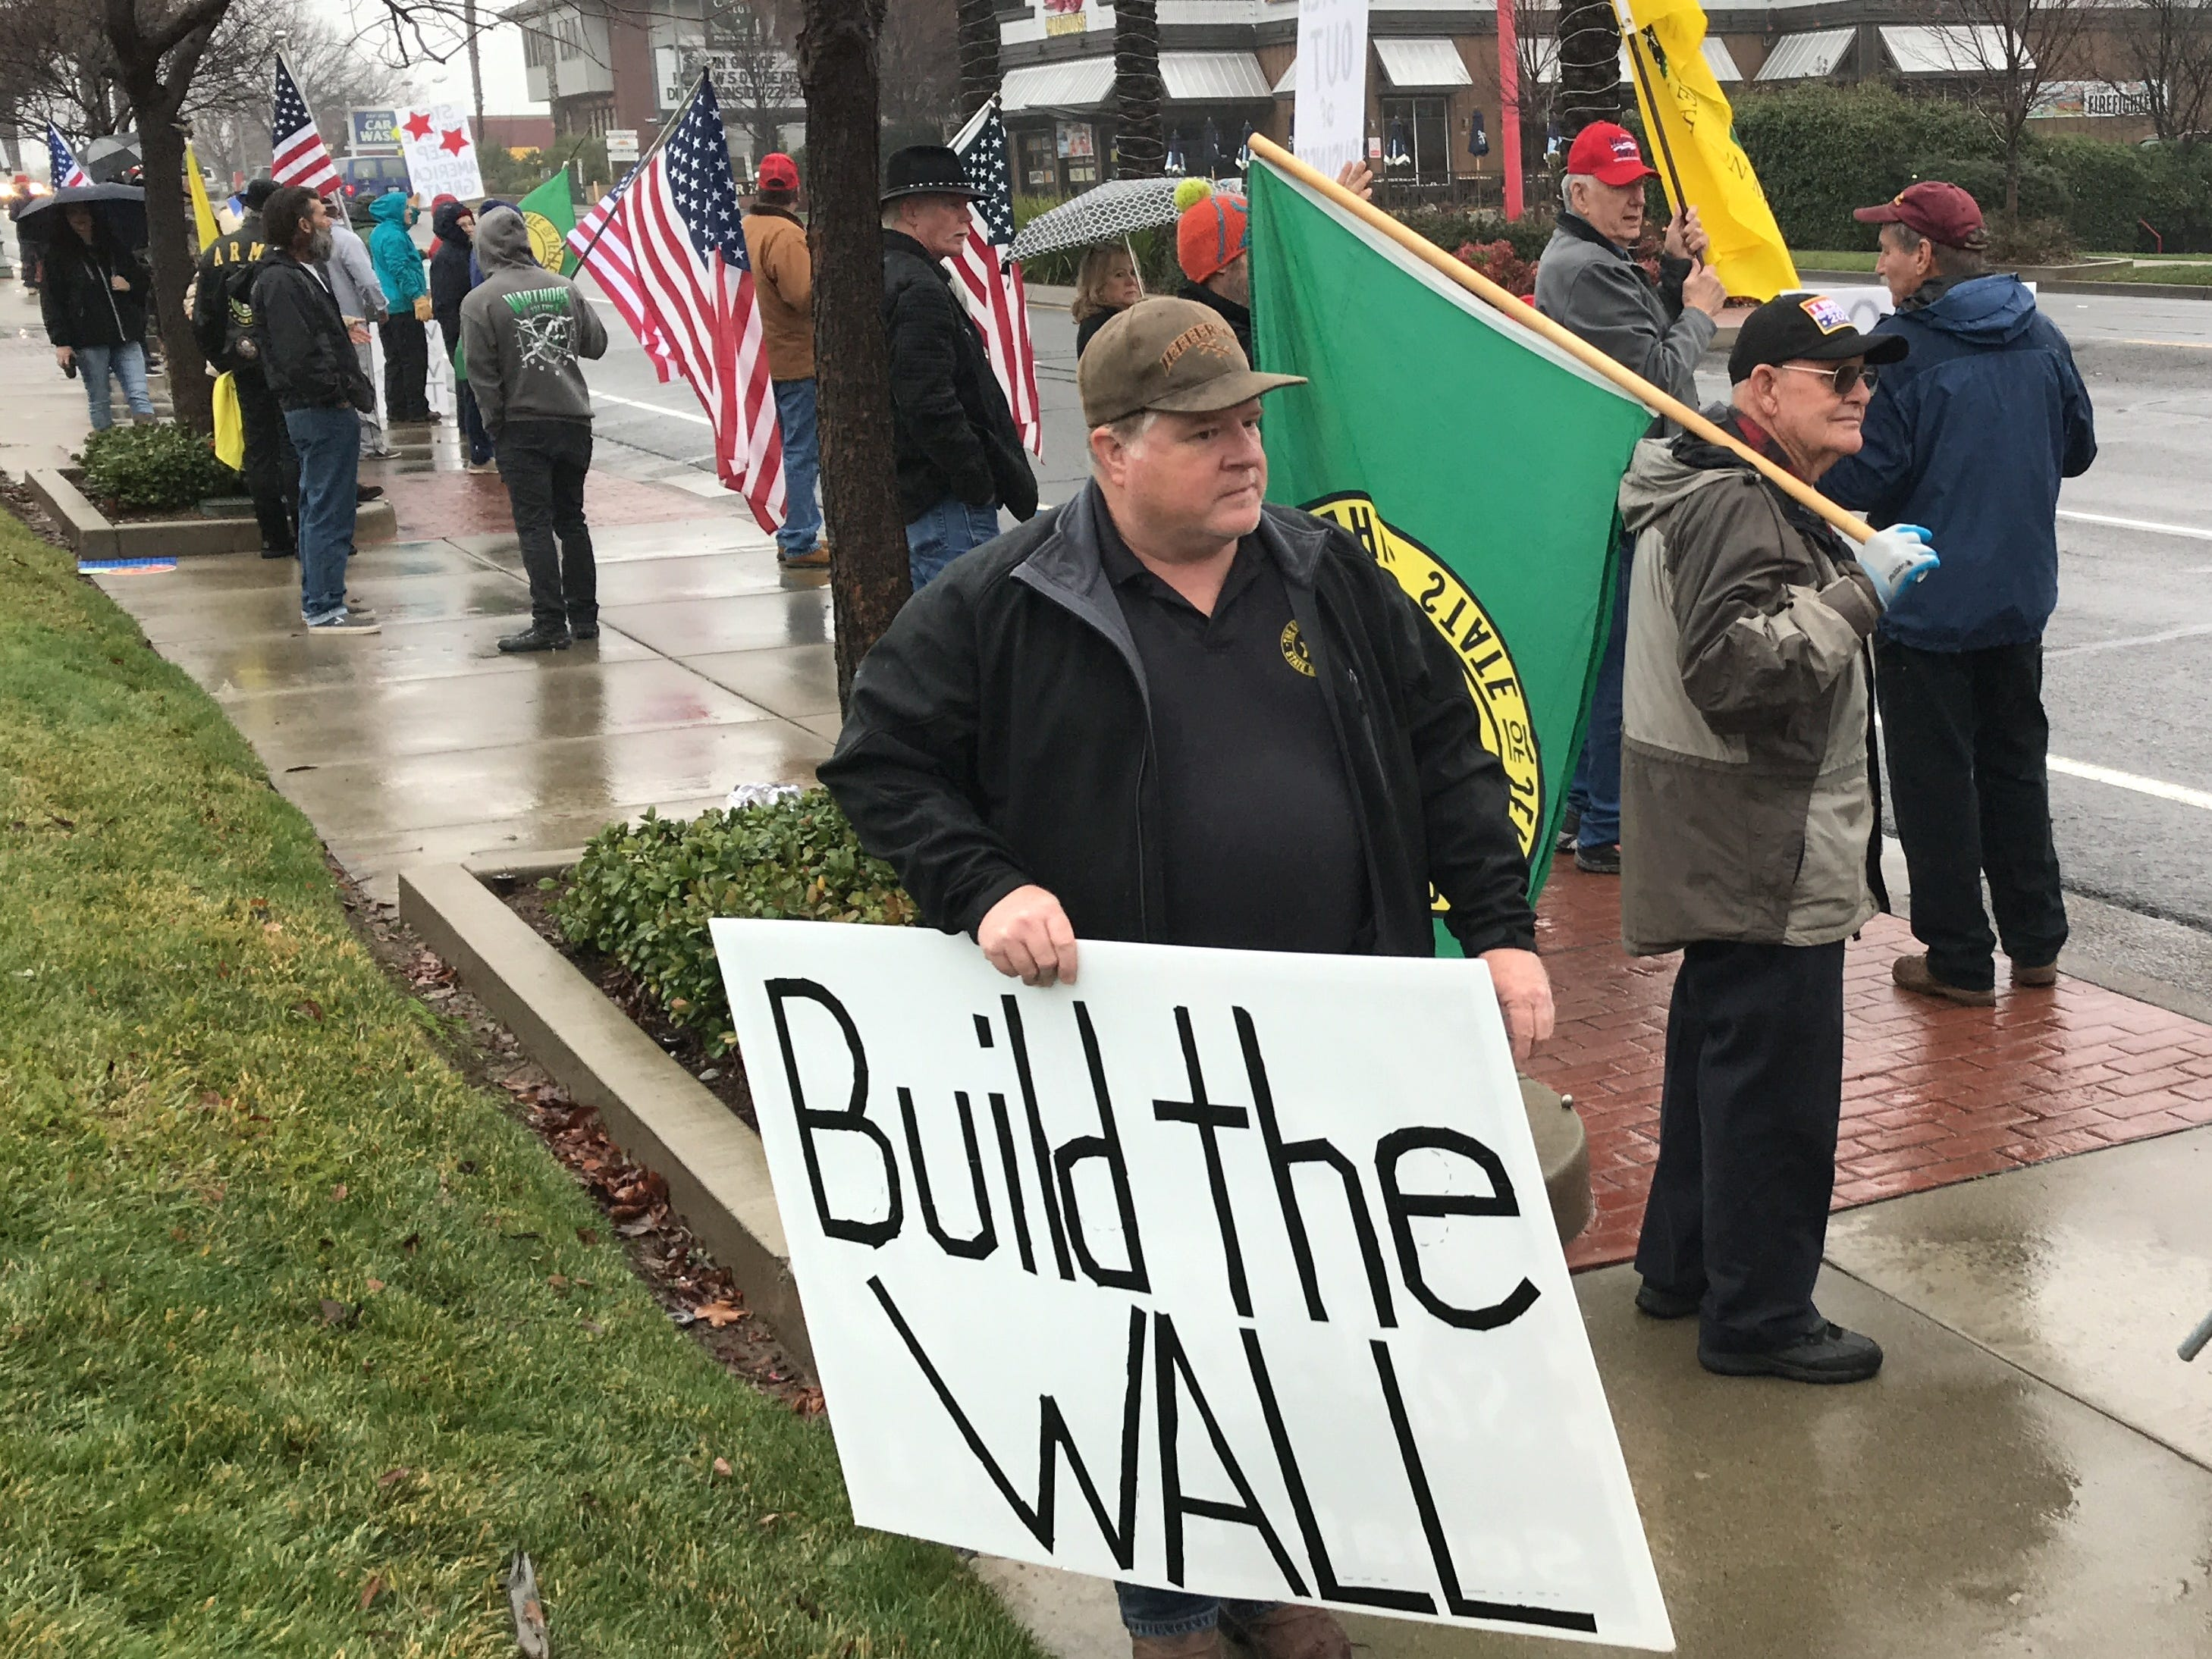 A Build That Wall! rally brought demonstrators to Hilltop Drive in Redding.